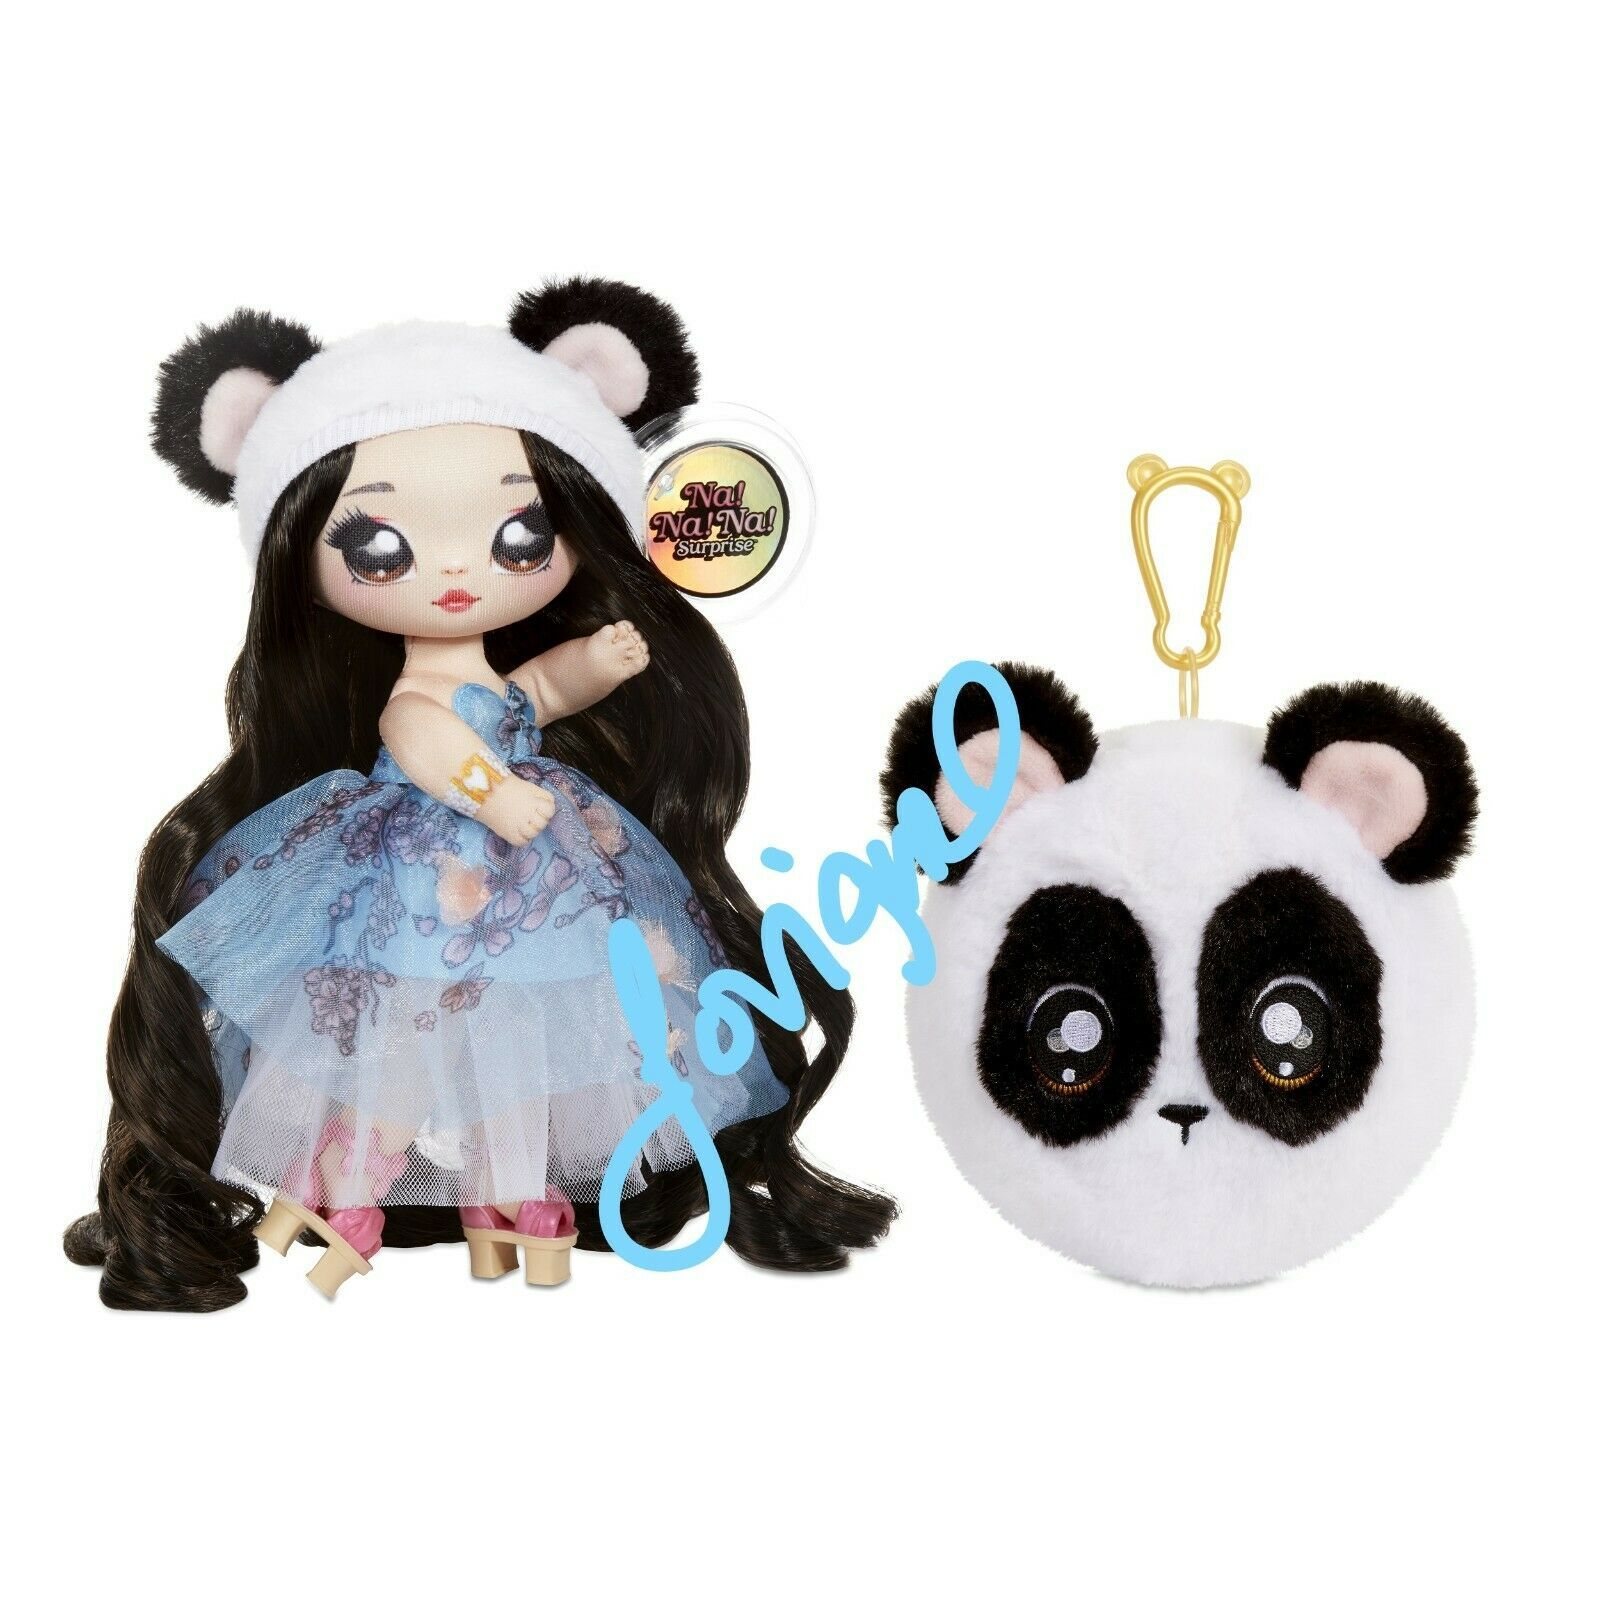 NA NA NA SURPRISE SERIES 4 JULI JOYFUL FASHION DOLL 2 IN 1 PLUSH POM NEW!!! - $37.99